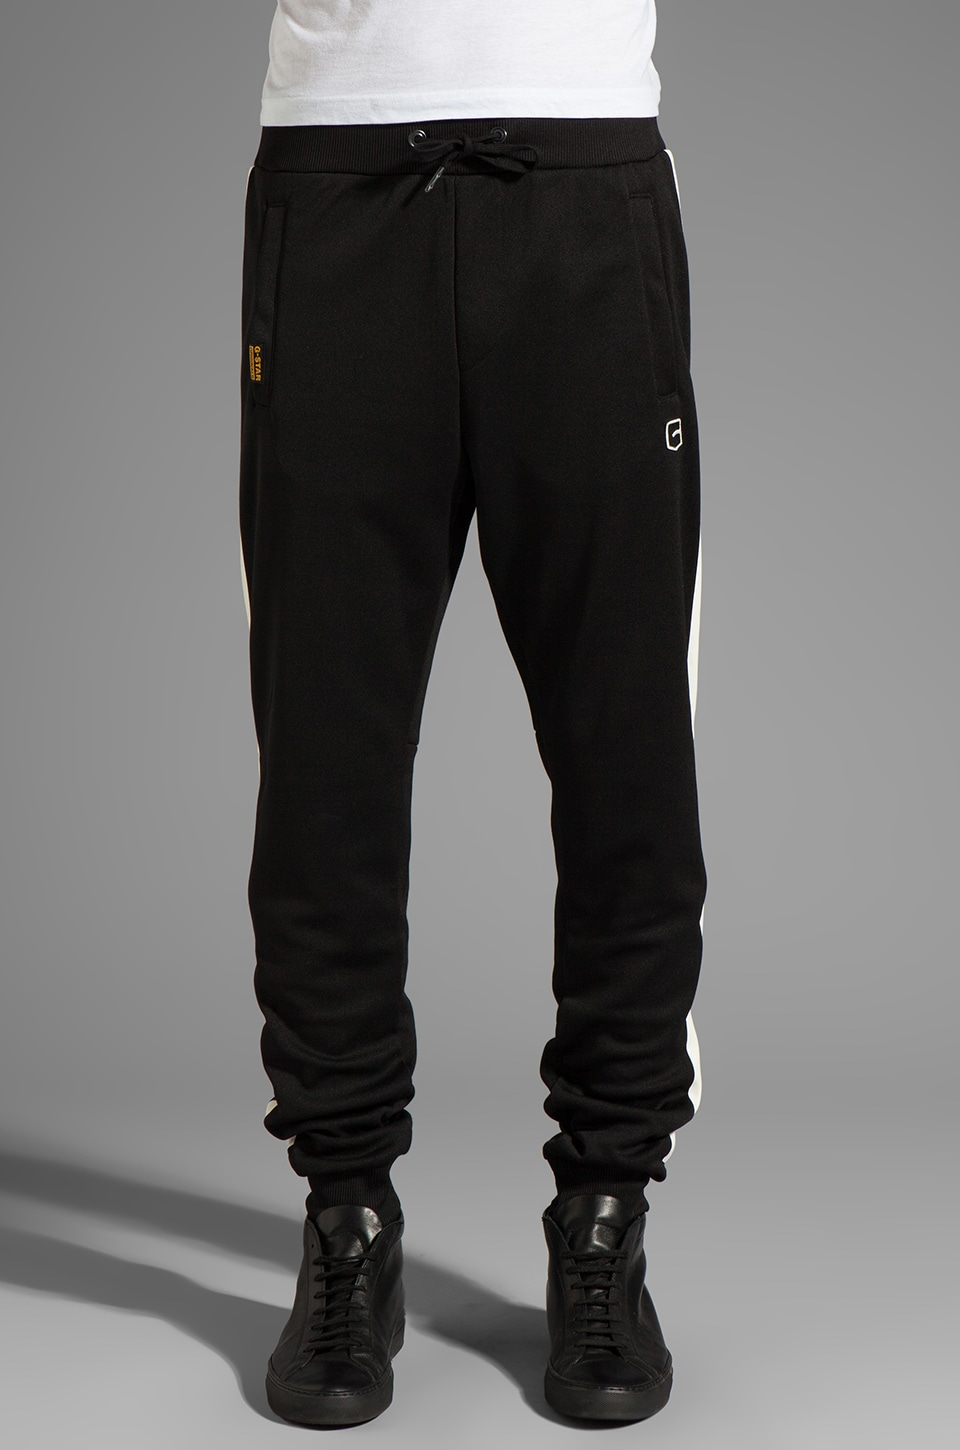 G-Star Carsatelli Sweatpant in Black